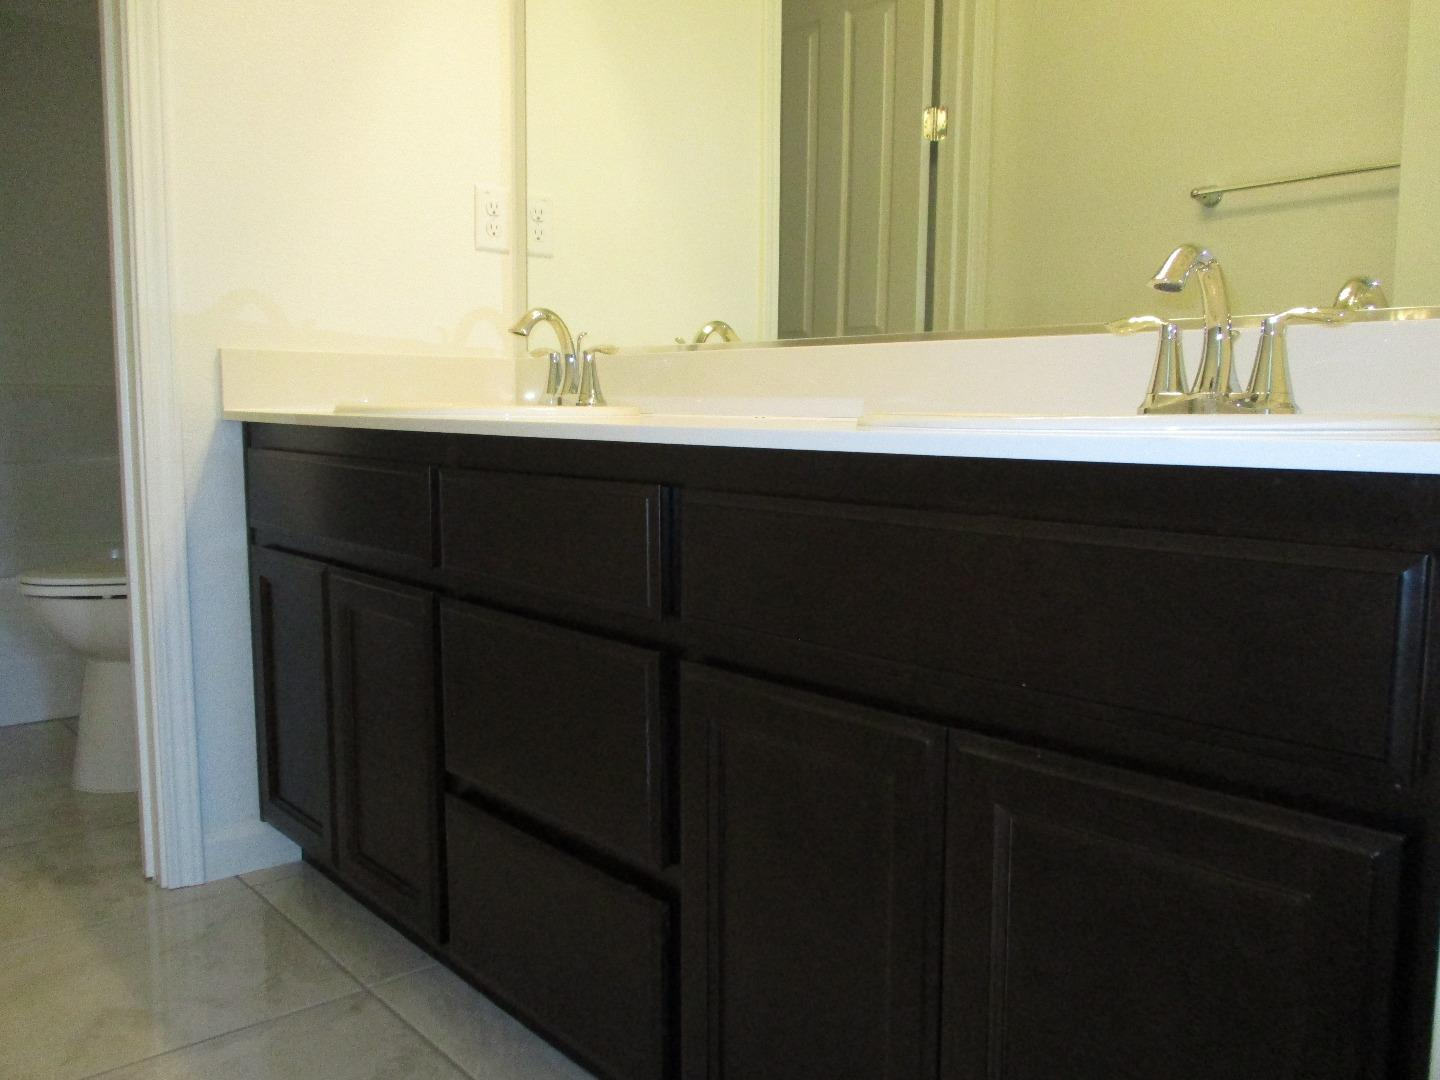 Additional photo for property listing at 1027 Ruby Way  Gilroy, カリフォルニア 95020 アメリカ合衆国